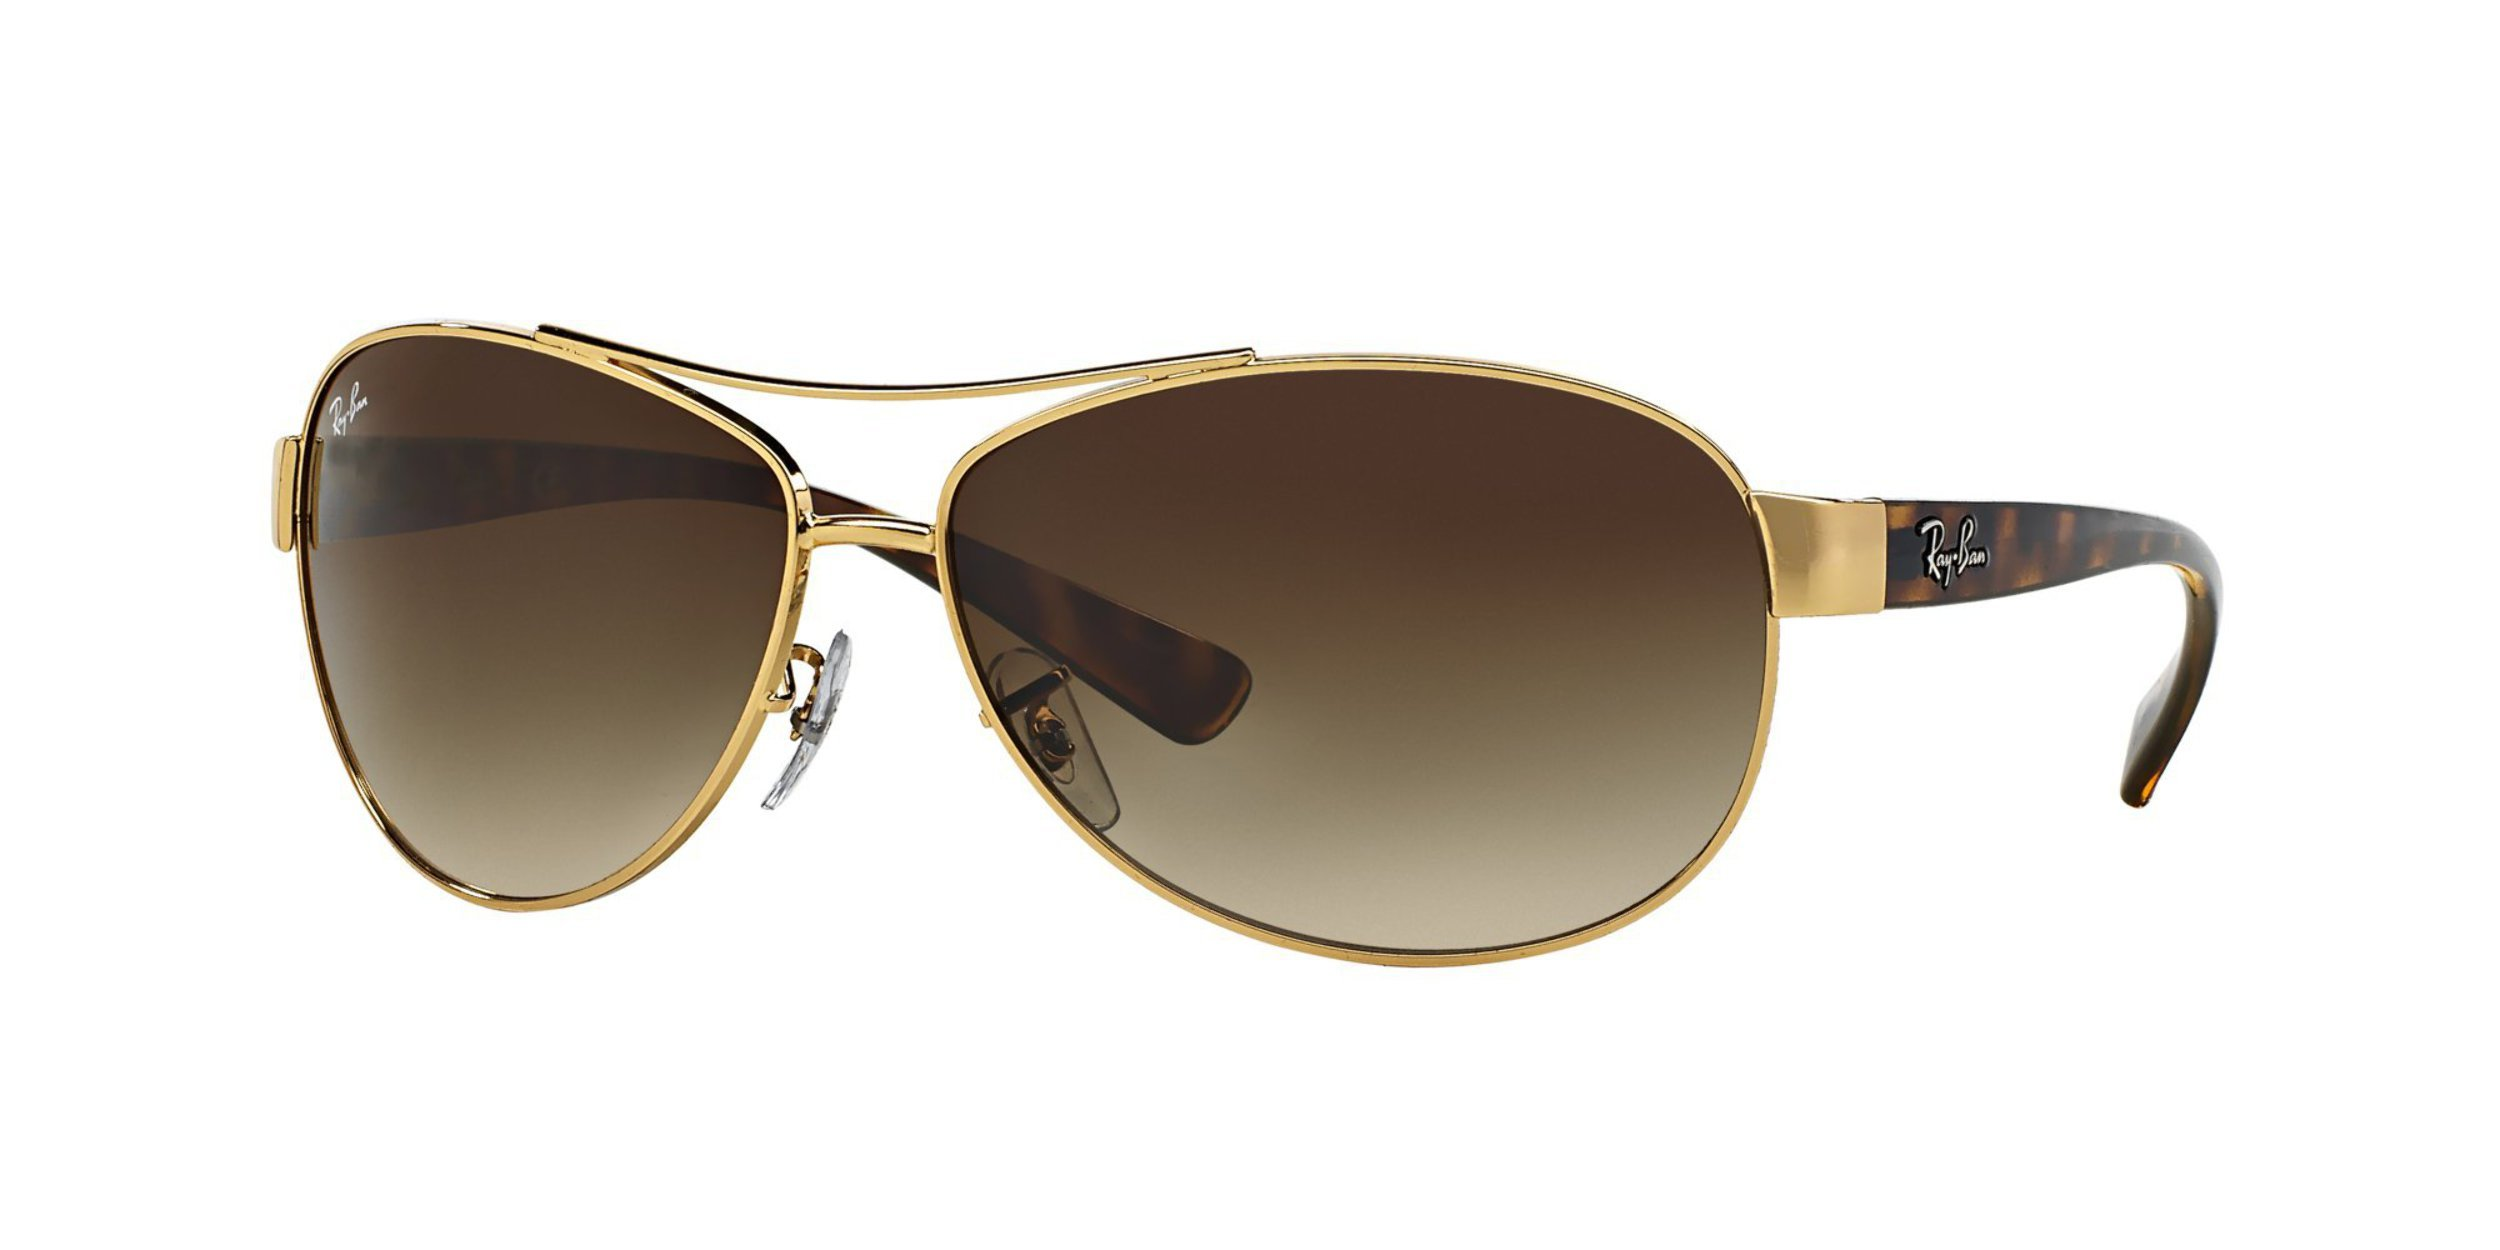 Ray-Ban Sunglasses - RB3386 / Frame: Gold Lens: Brown Gradient (63mm) by Ray-Ban